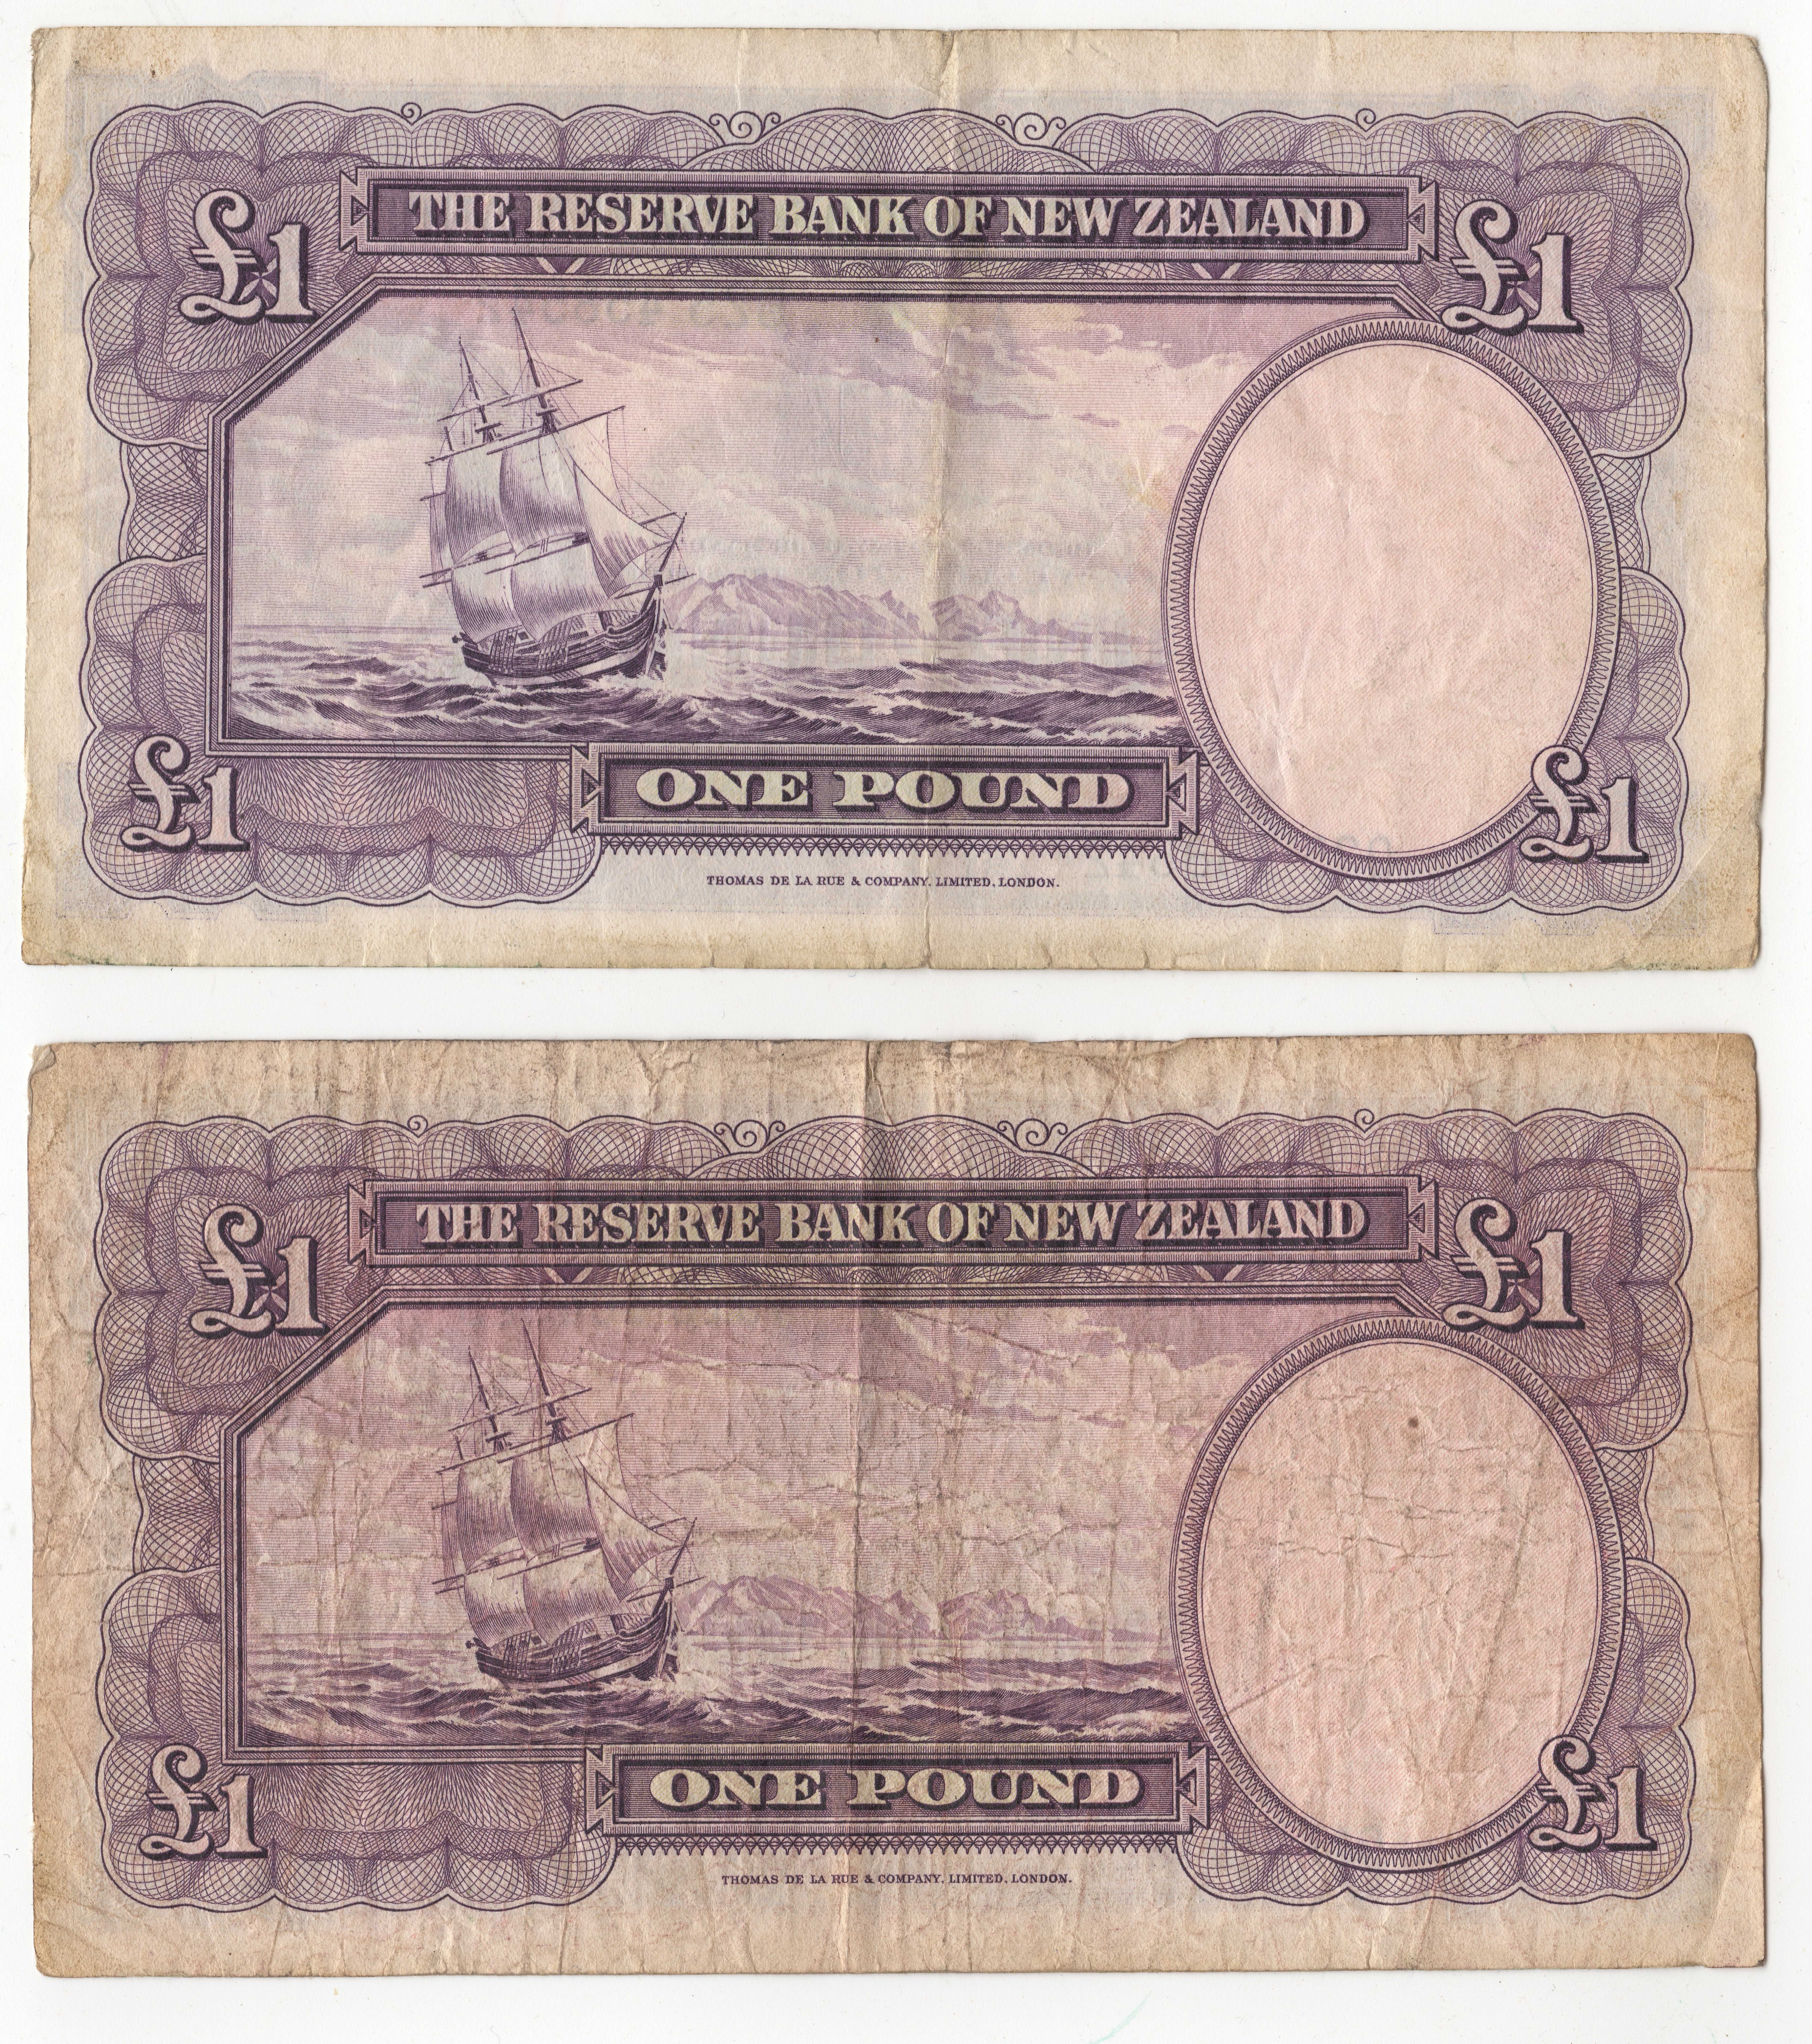 New Zealand 1 One Pound Notes Bank Notes Pennies2pounds